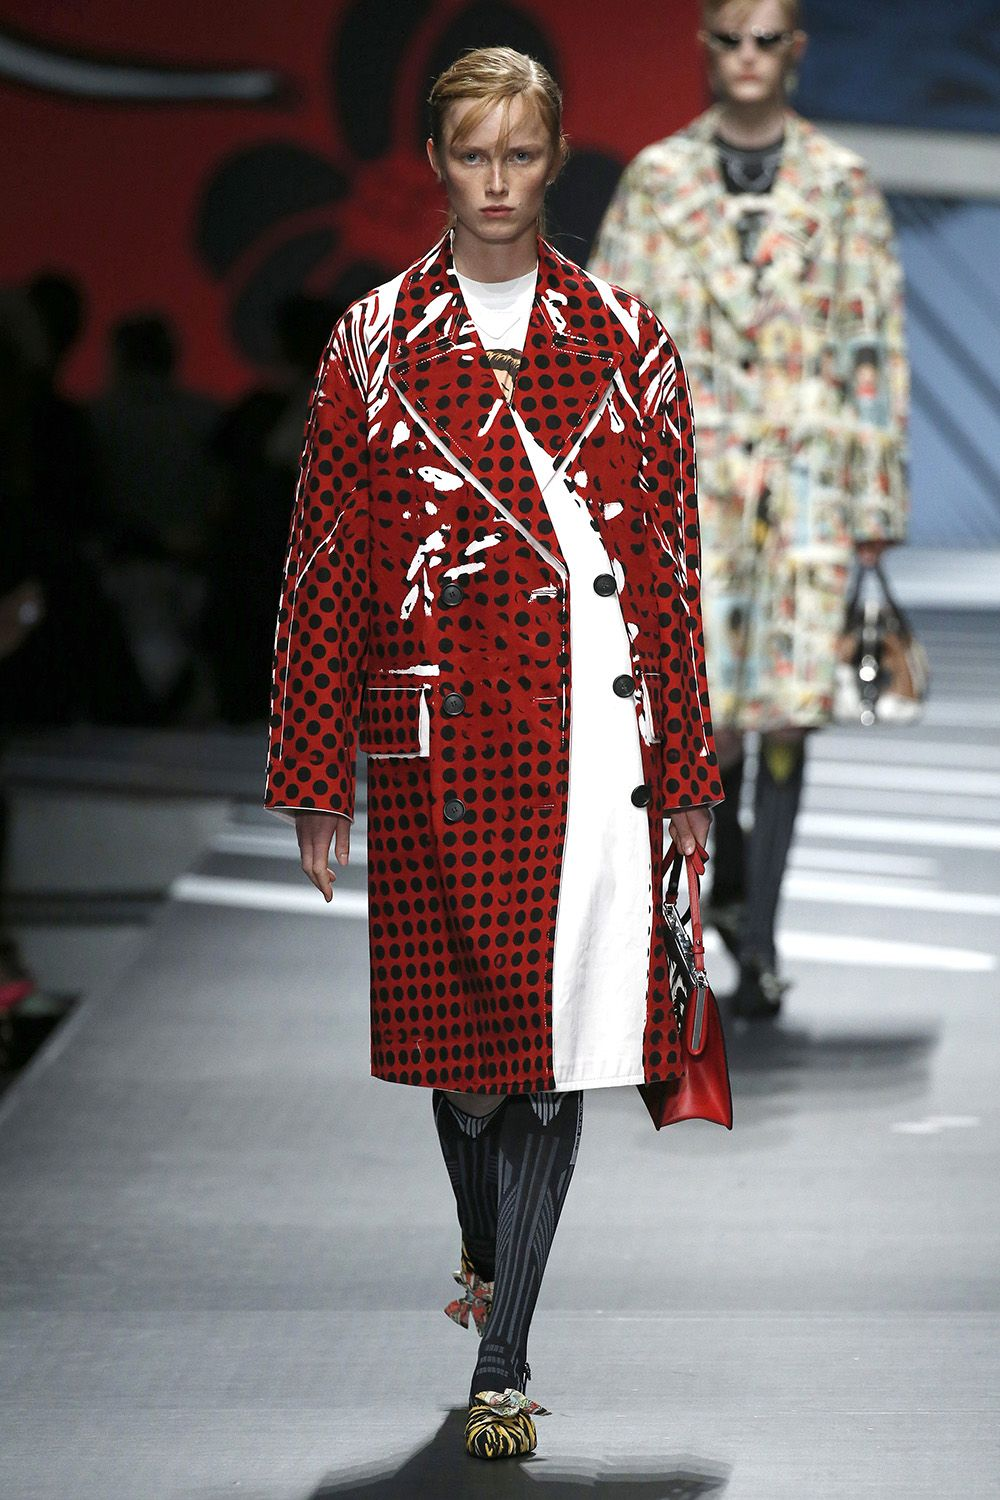 "<p>This is for more of an entrance-making scenario, but in a red patent slicker (preferably Prada), you don't even have to toss it onto someone's desk for everybody to go ""gird your loins."" And given that <a href=""http://www.marieclaire.com/career-advice/news/a15322/office-cold-air-conditioning/"" target=""_blank"" data-tracking-id=""recirc-text-link"">air-conditioning is sexist</a>, it wouldn't be so weird if you kept it on.</p><p><em data-redactor-tag=""em"" data-verified=""redactor"">Shop similar: Topshop, $170</em></p><p><strong data-redactor-tag=""strong"">BUY IT: </strong><span class=""redactor-invisible-space"" data-verified=""redactor"" data-redactor-tag=""span"" data-redactor-class=""redactor-invisible-space""><strong data-redactor-tag=""strong""><a href=""http://us.topshop.com/en/tsus/product/clothing-70483/jackets-coats-2390895/vinyl-trench-coat-6926592?bi=0&ps=20"" target=""_blank"" data-tracking-id=""recirc-text-link"">topshop.com</a>.</strong></span><span class=""redactor-invisible-space"" data-verified=""redactor"" data-redactor-tag=""span"" data-redactor-class=""redactor-invisible-space""></span></p>"